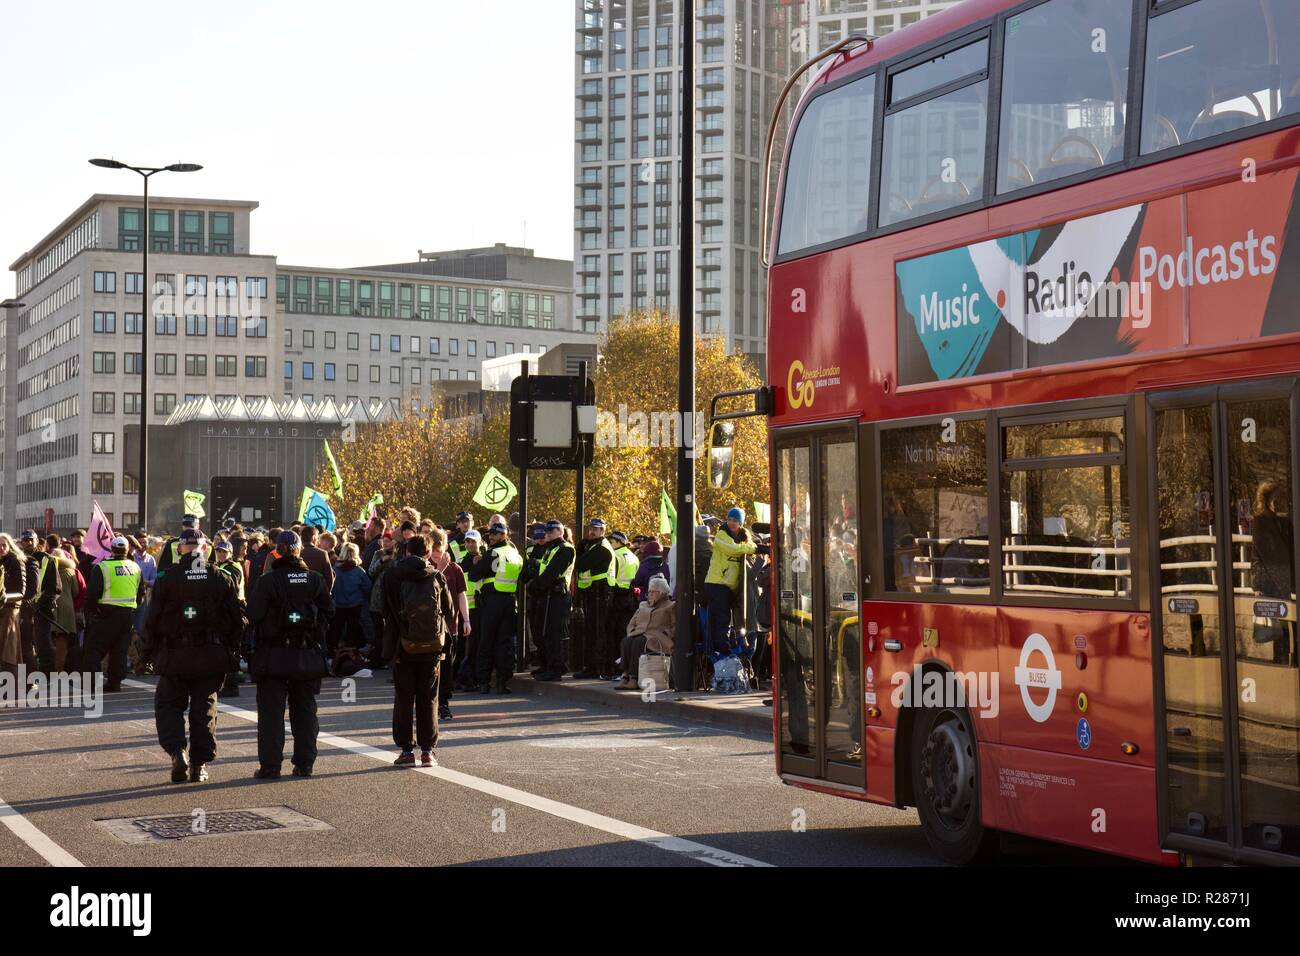 London, UK. 17th November 2018. London buses are blocked by Extinction Rebellion protests on Waterloo Bridge. Credit: Dimple Patel/Alamy Live News Stock Photo